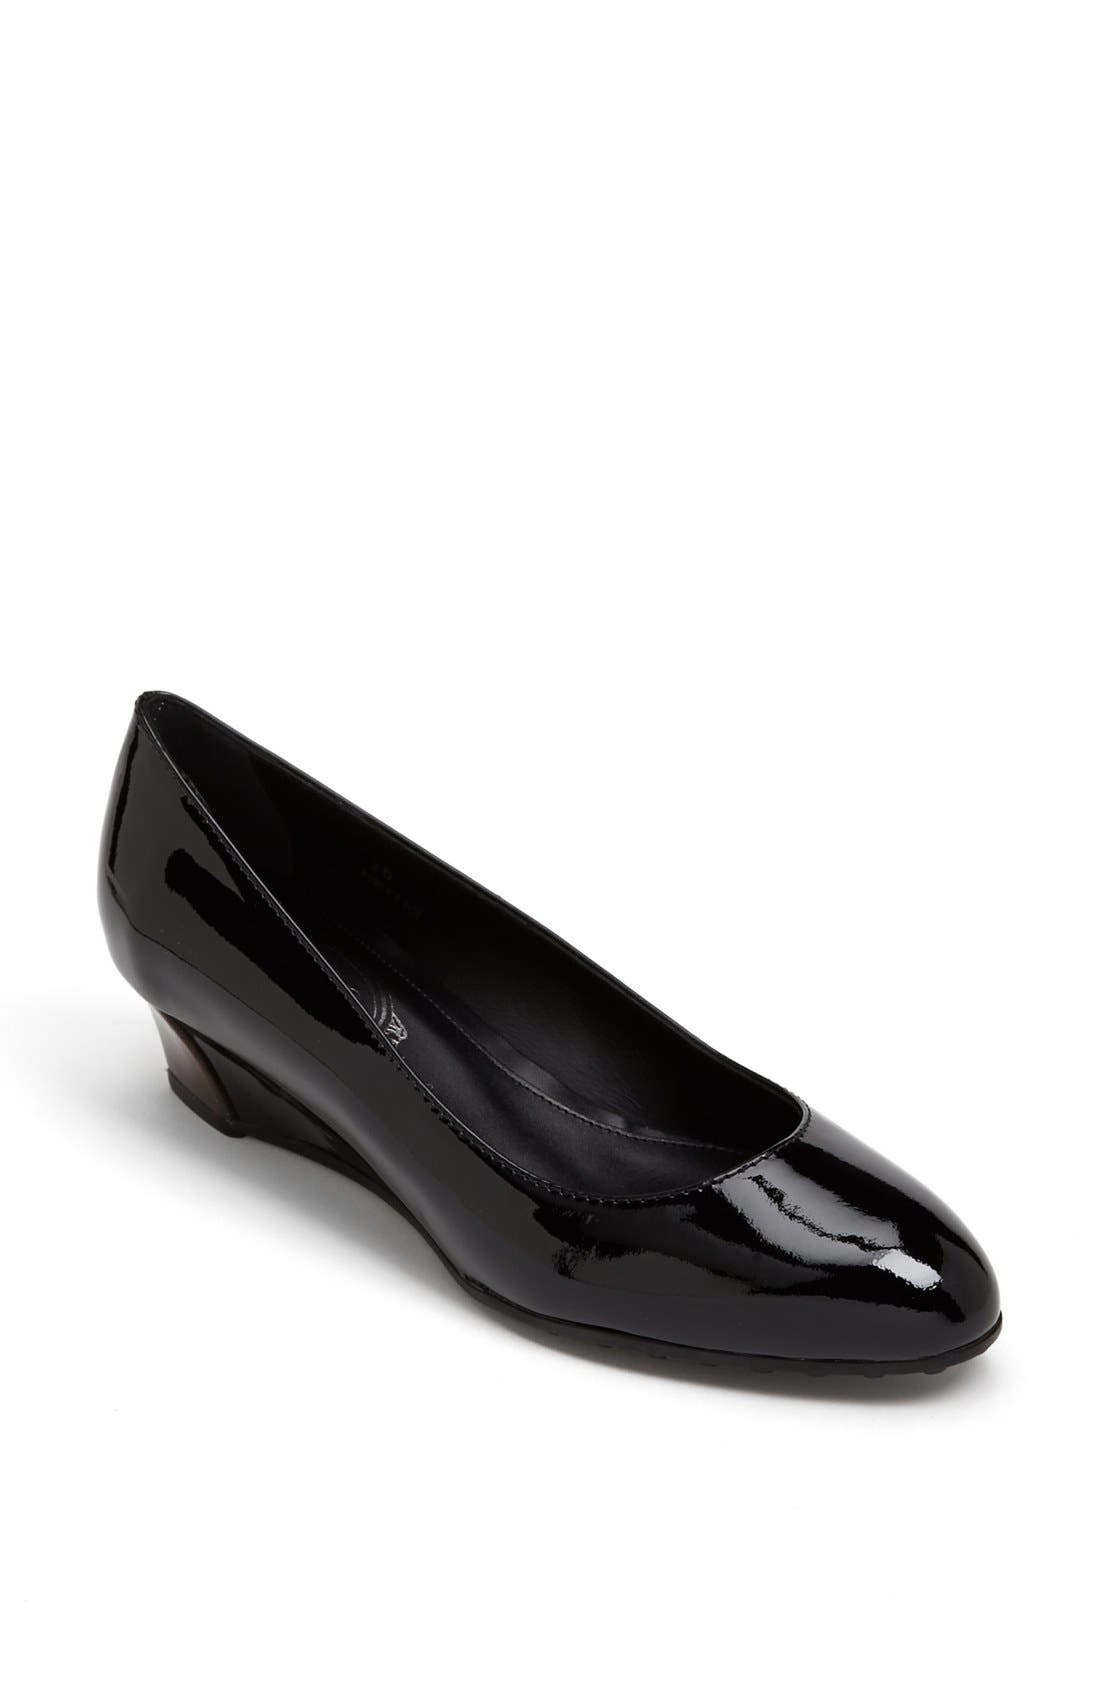 Main Image - Tod's 'Zeppa' Wedge Pump